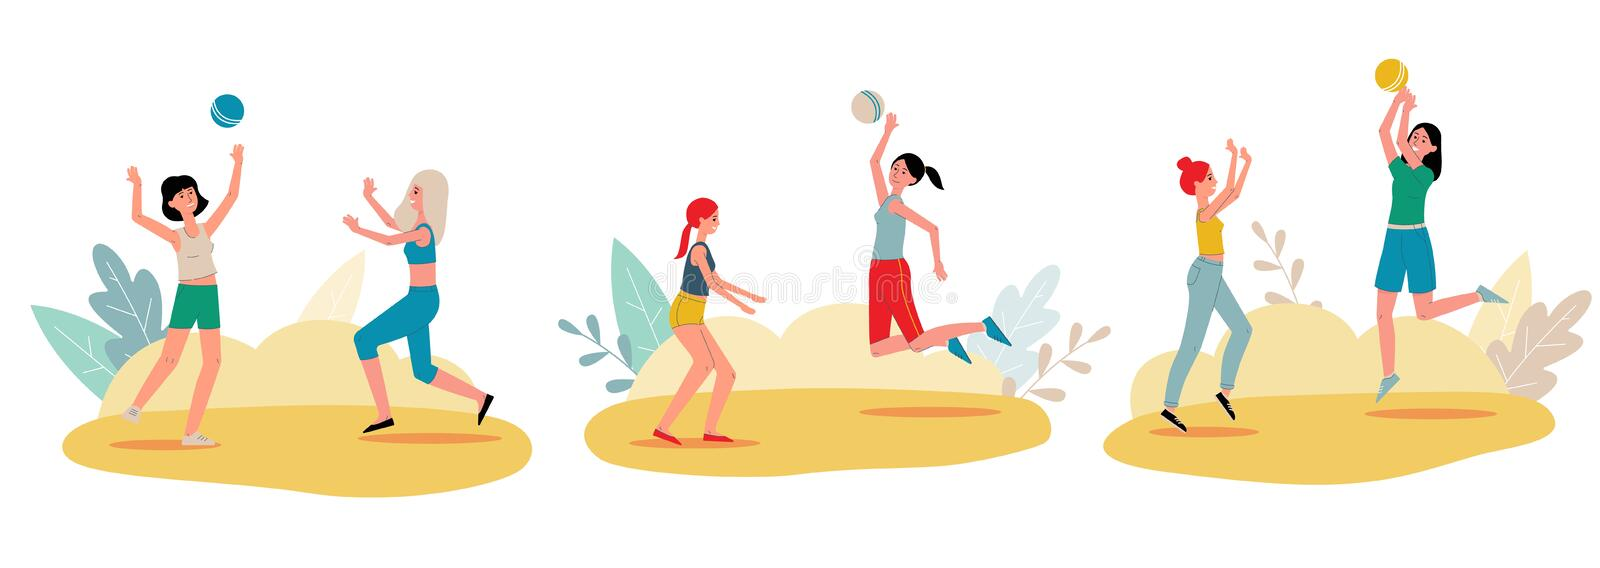 Group of women playing volleyball on beach, flat vector illustration isolated. royalty free illustration